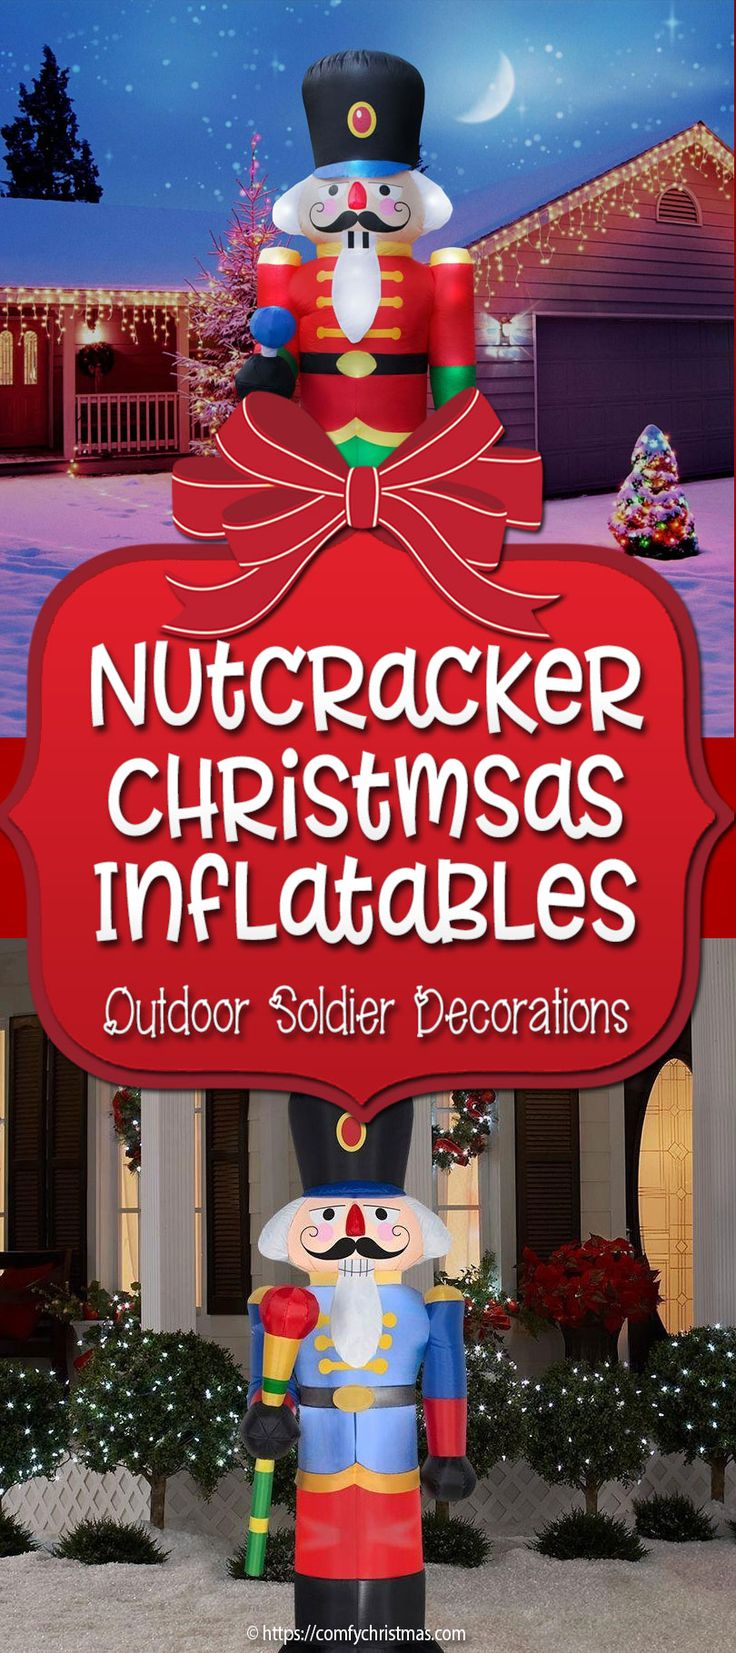 These Nutcracker Soldier Decorations Outdoor Christmas Inflatables are the ideal Whimsical Inflatable Nutcracker Outdoor Decorations that are sure to delight everyone who passes by!